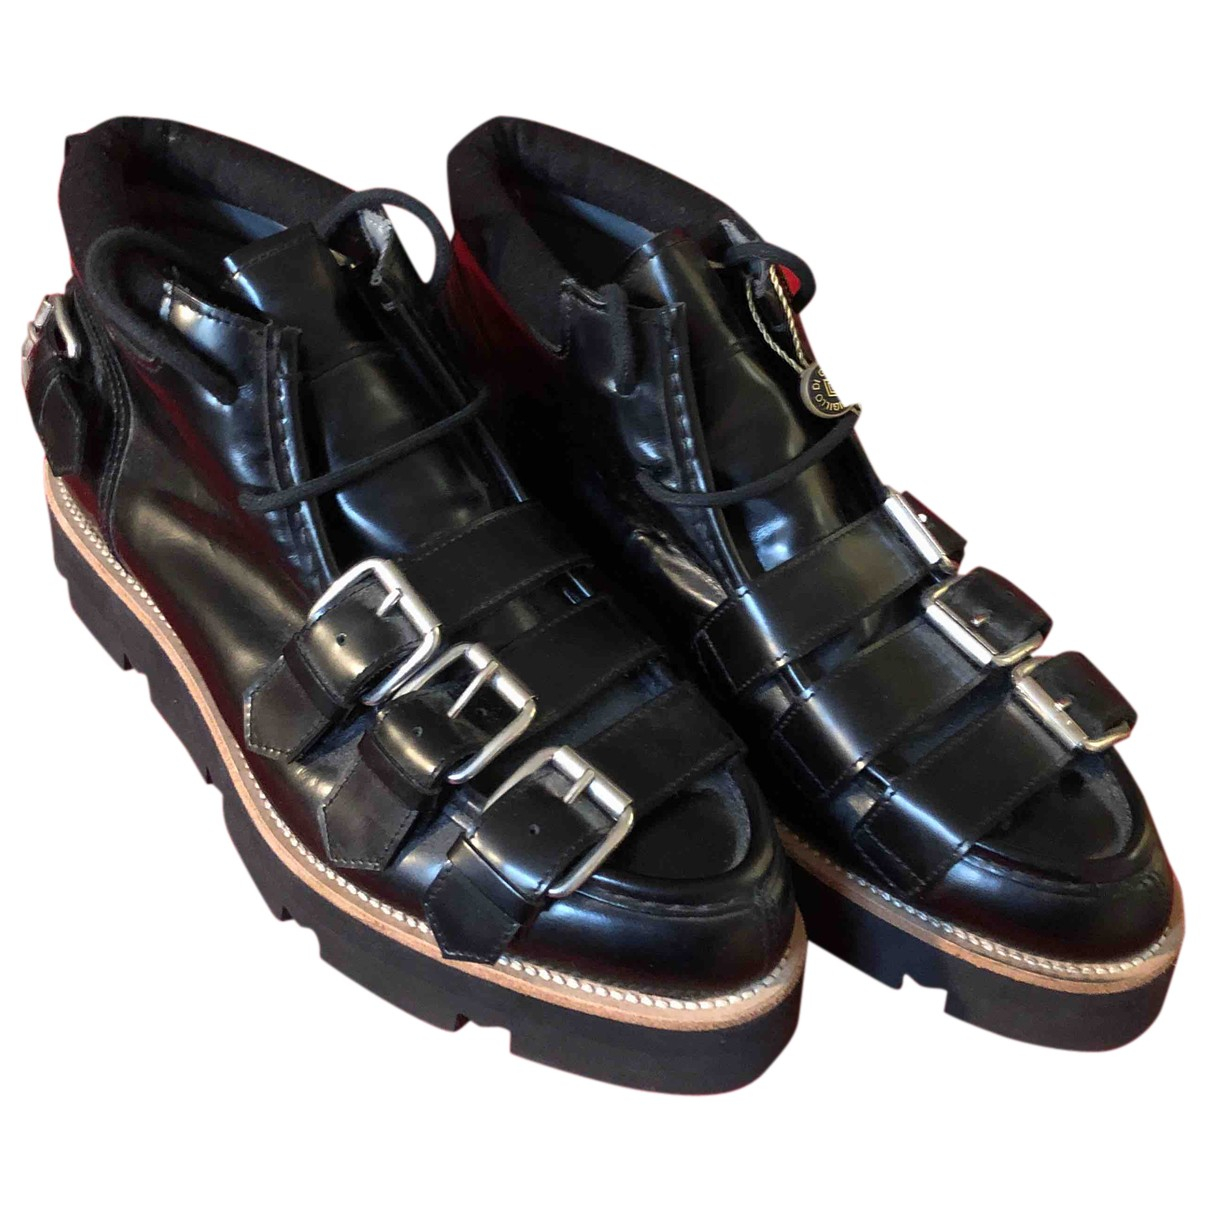 Msgm N Black Leather Boots for Men 44 EU